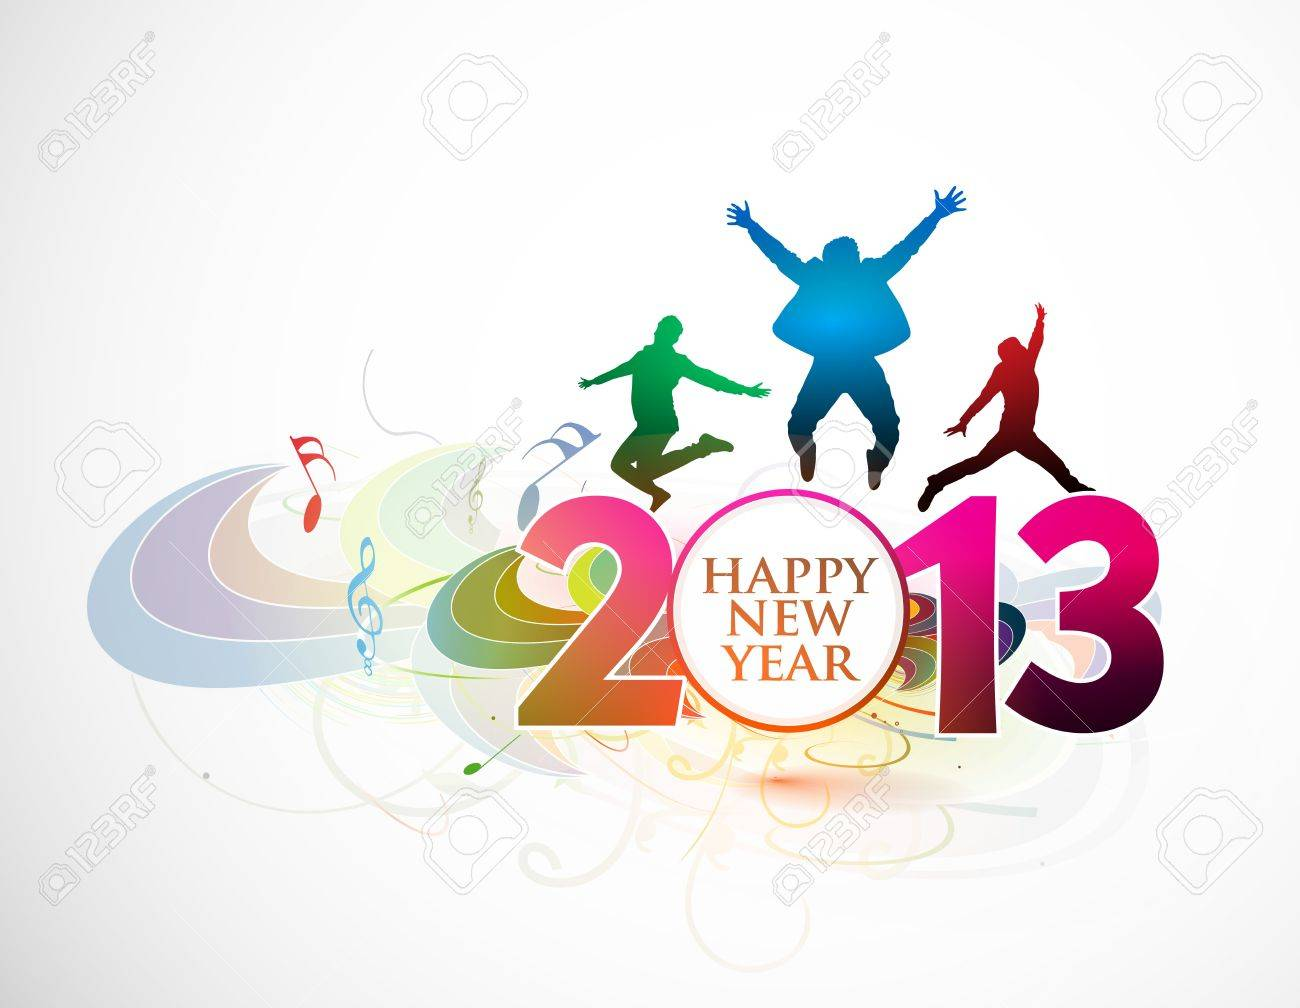 New year 2013 background for new year poster design. Stock Vector - 16108179